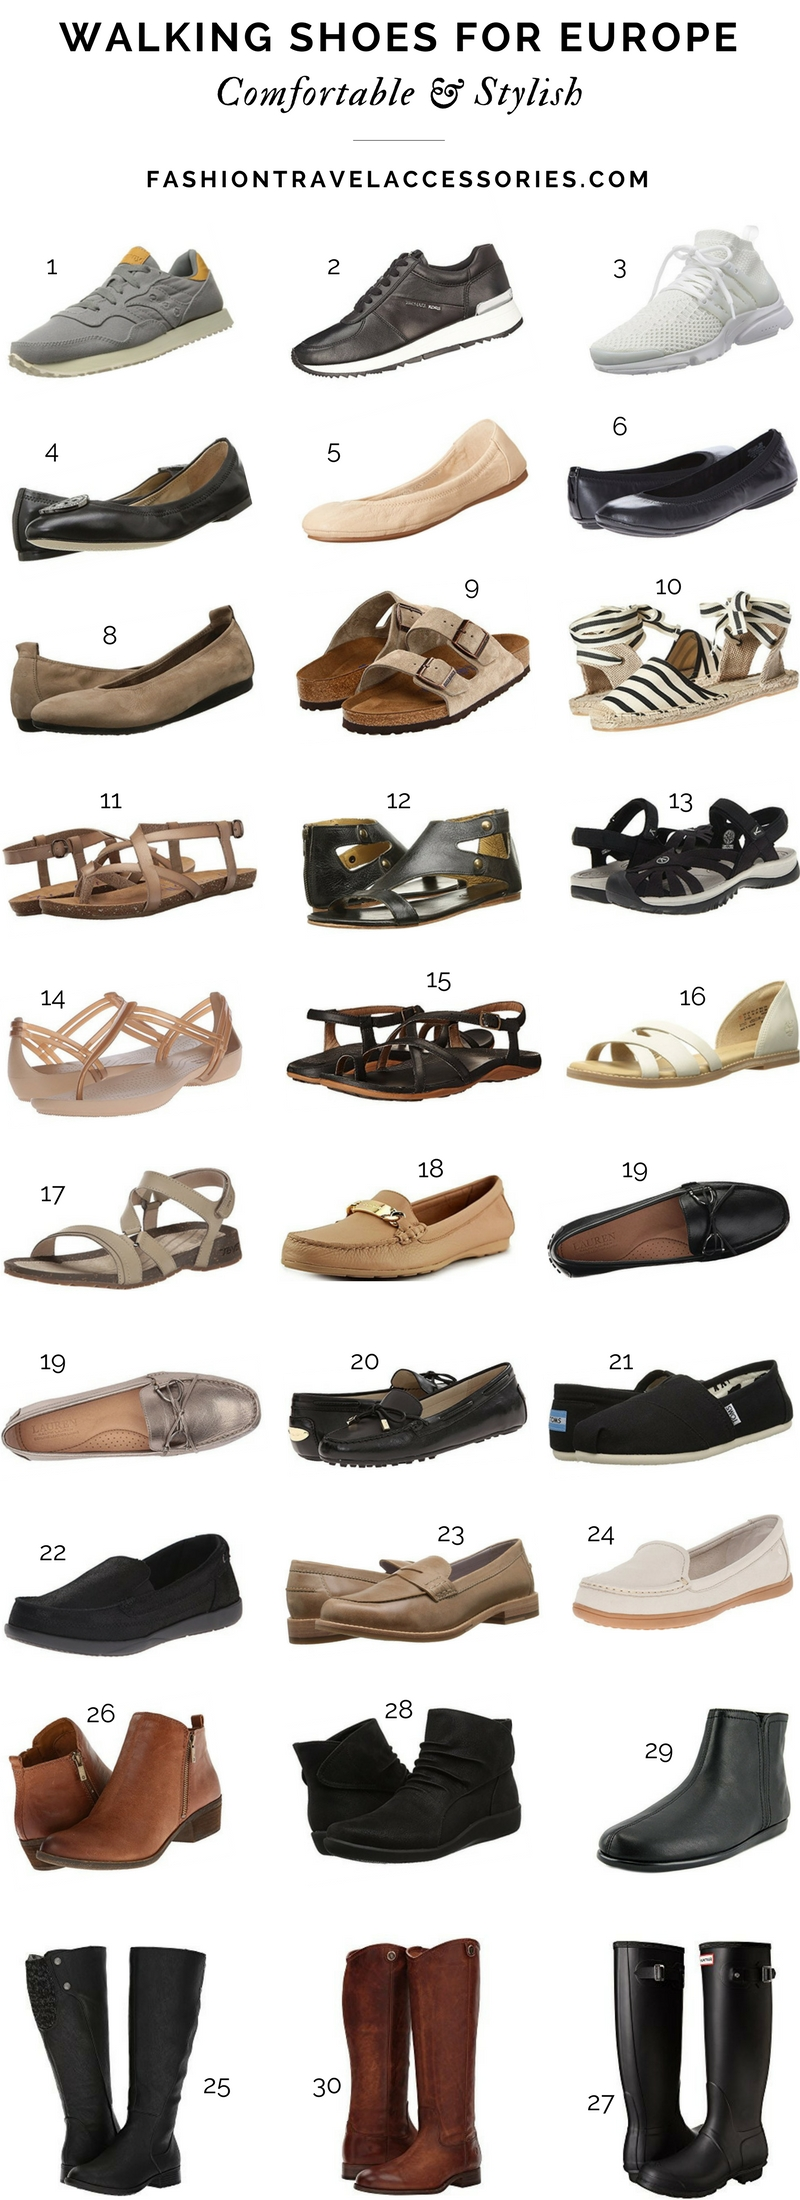 Walking Shoes For Europe Comfortable Functional Chic Stylish - Fashion Travel Accessories 1